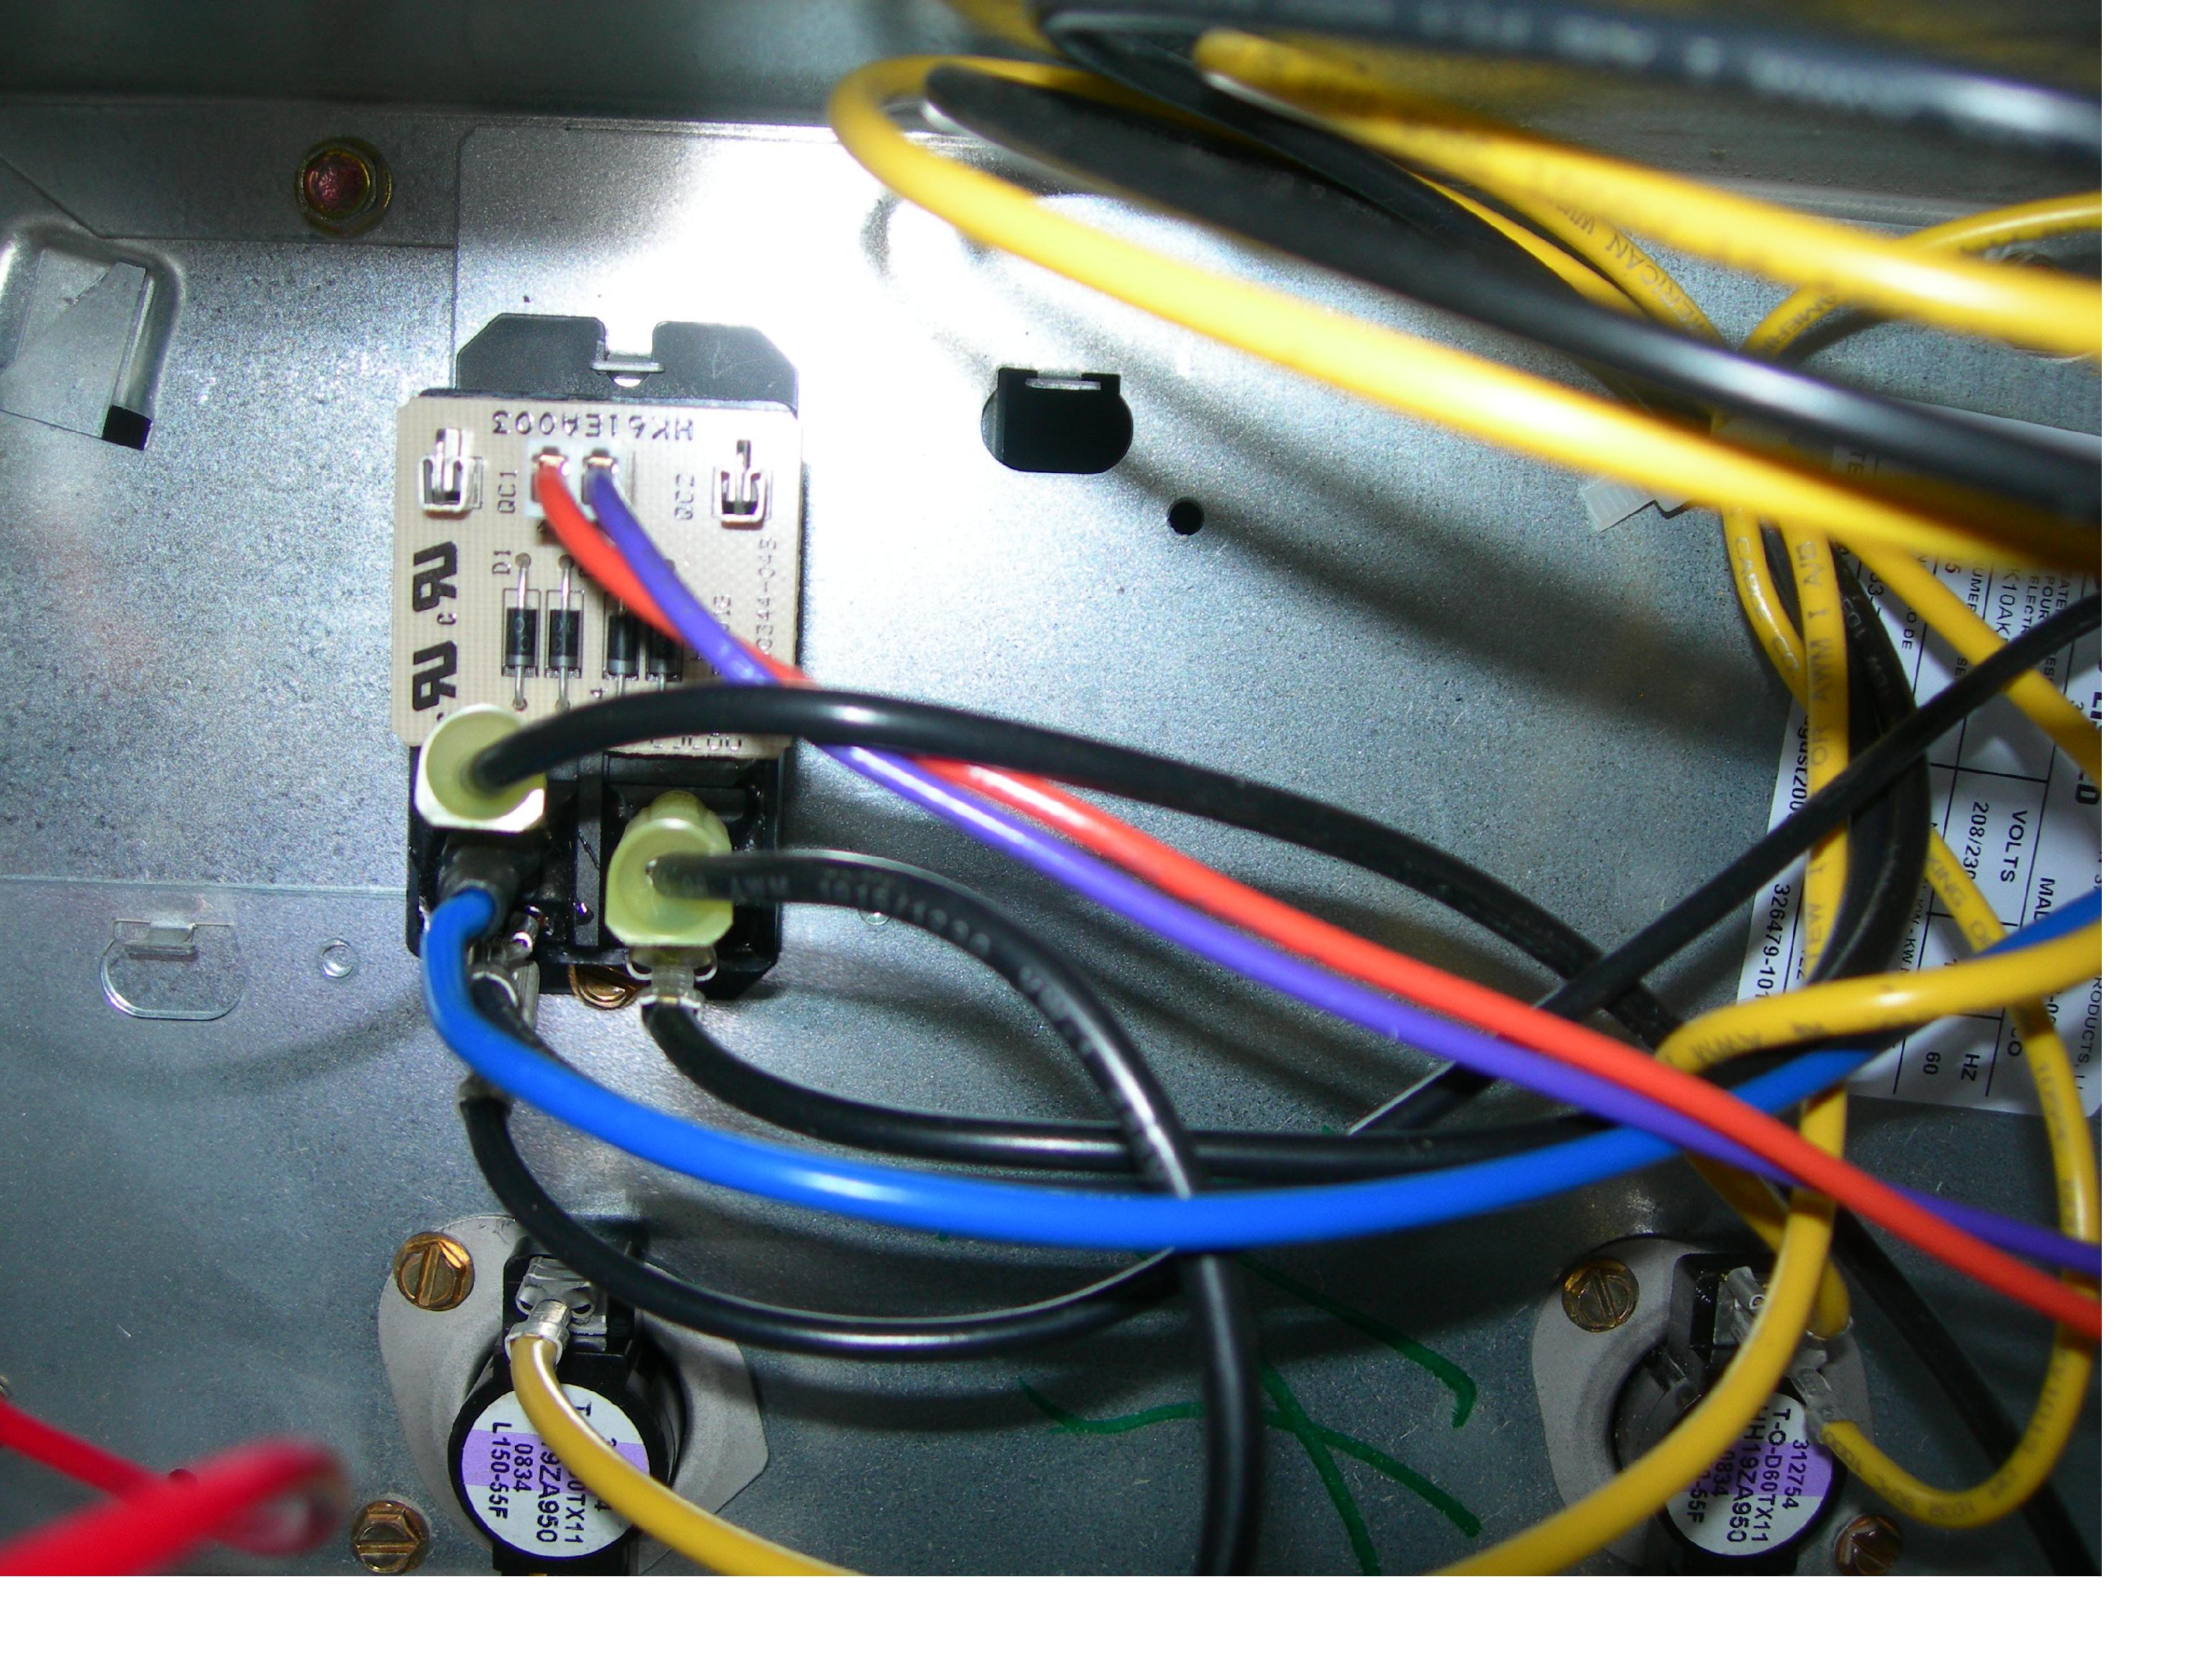 heil heat pump wiring diagram heil image wiring hvac heat pump wiring diagram hvac wiring diagrams car on heil heat pump wiring diagram